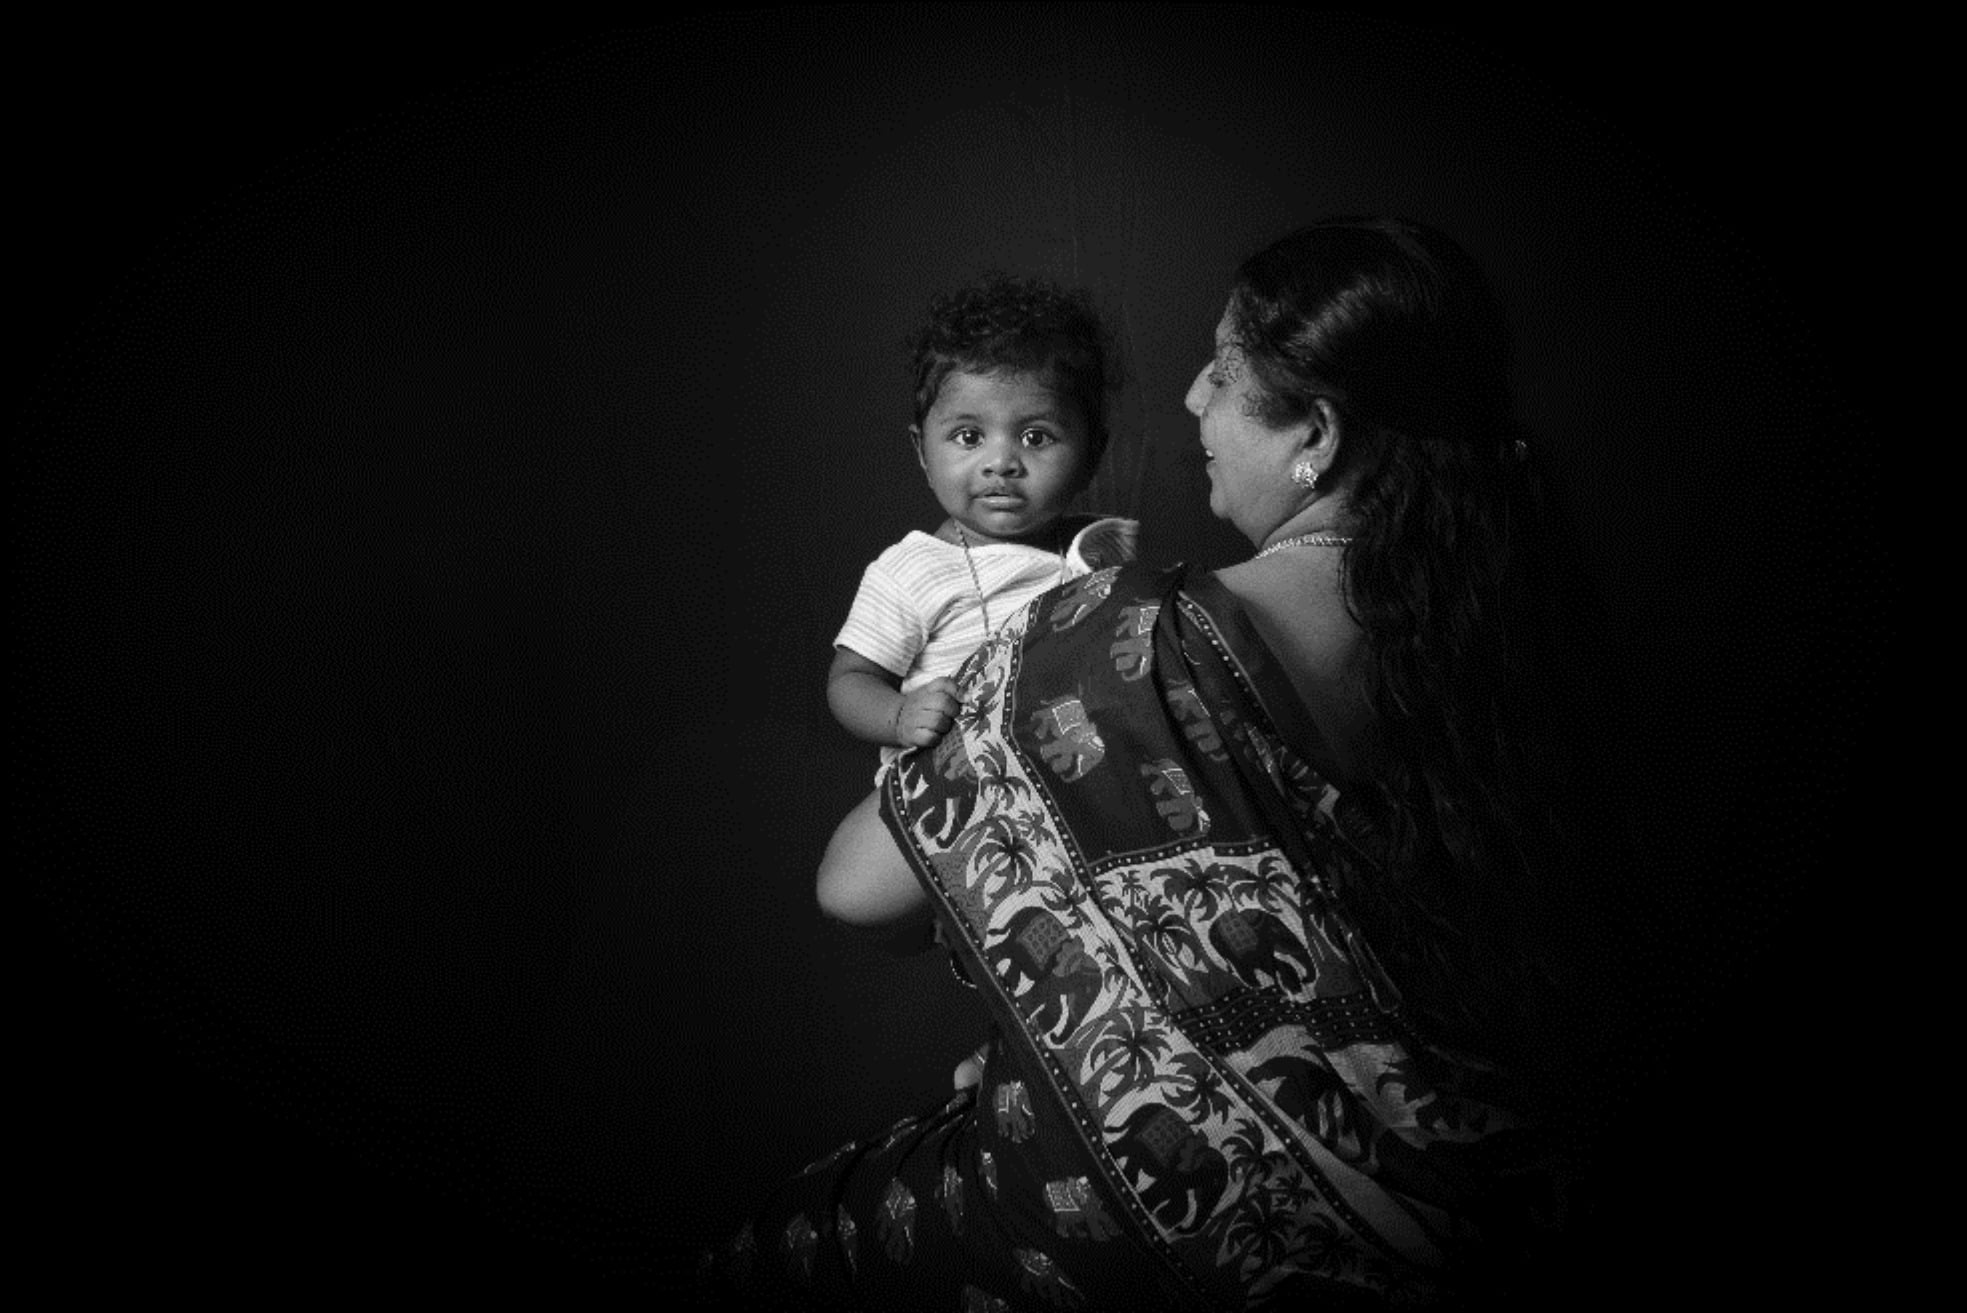 Flash photography, Toddler, Monochrome, Baby, Elbow